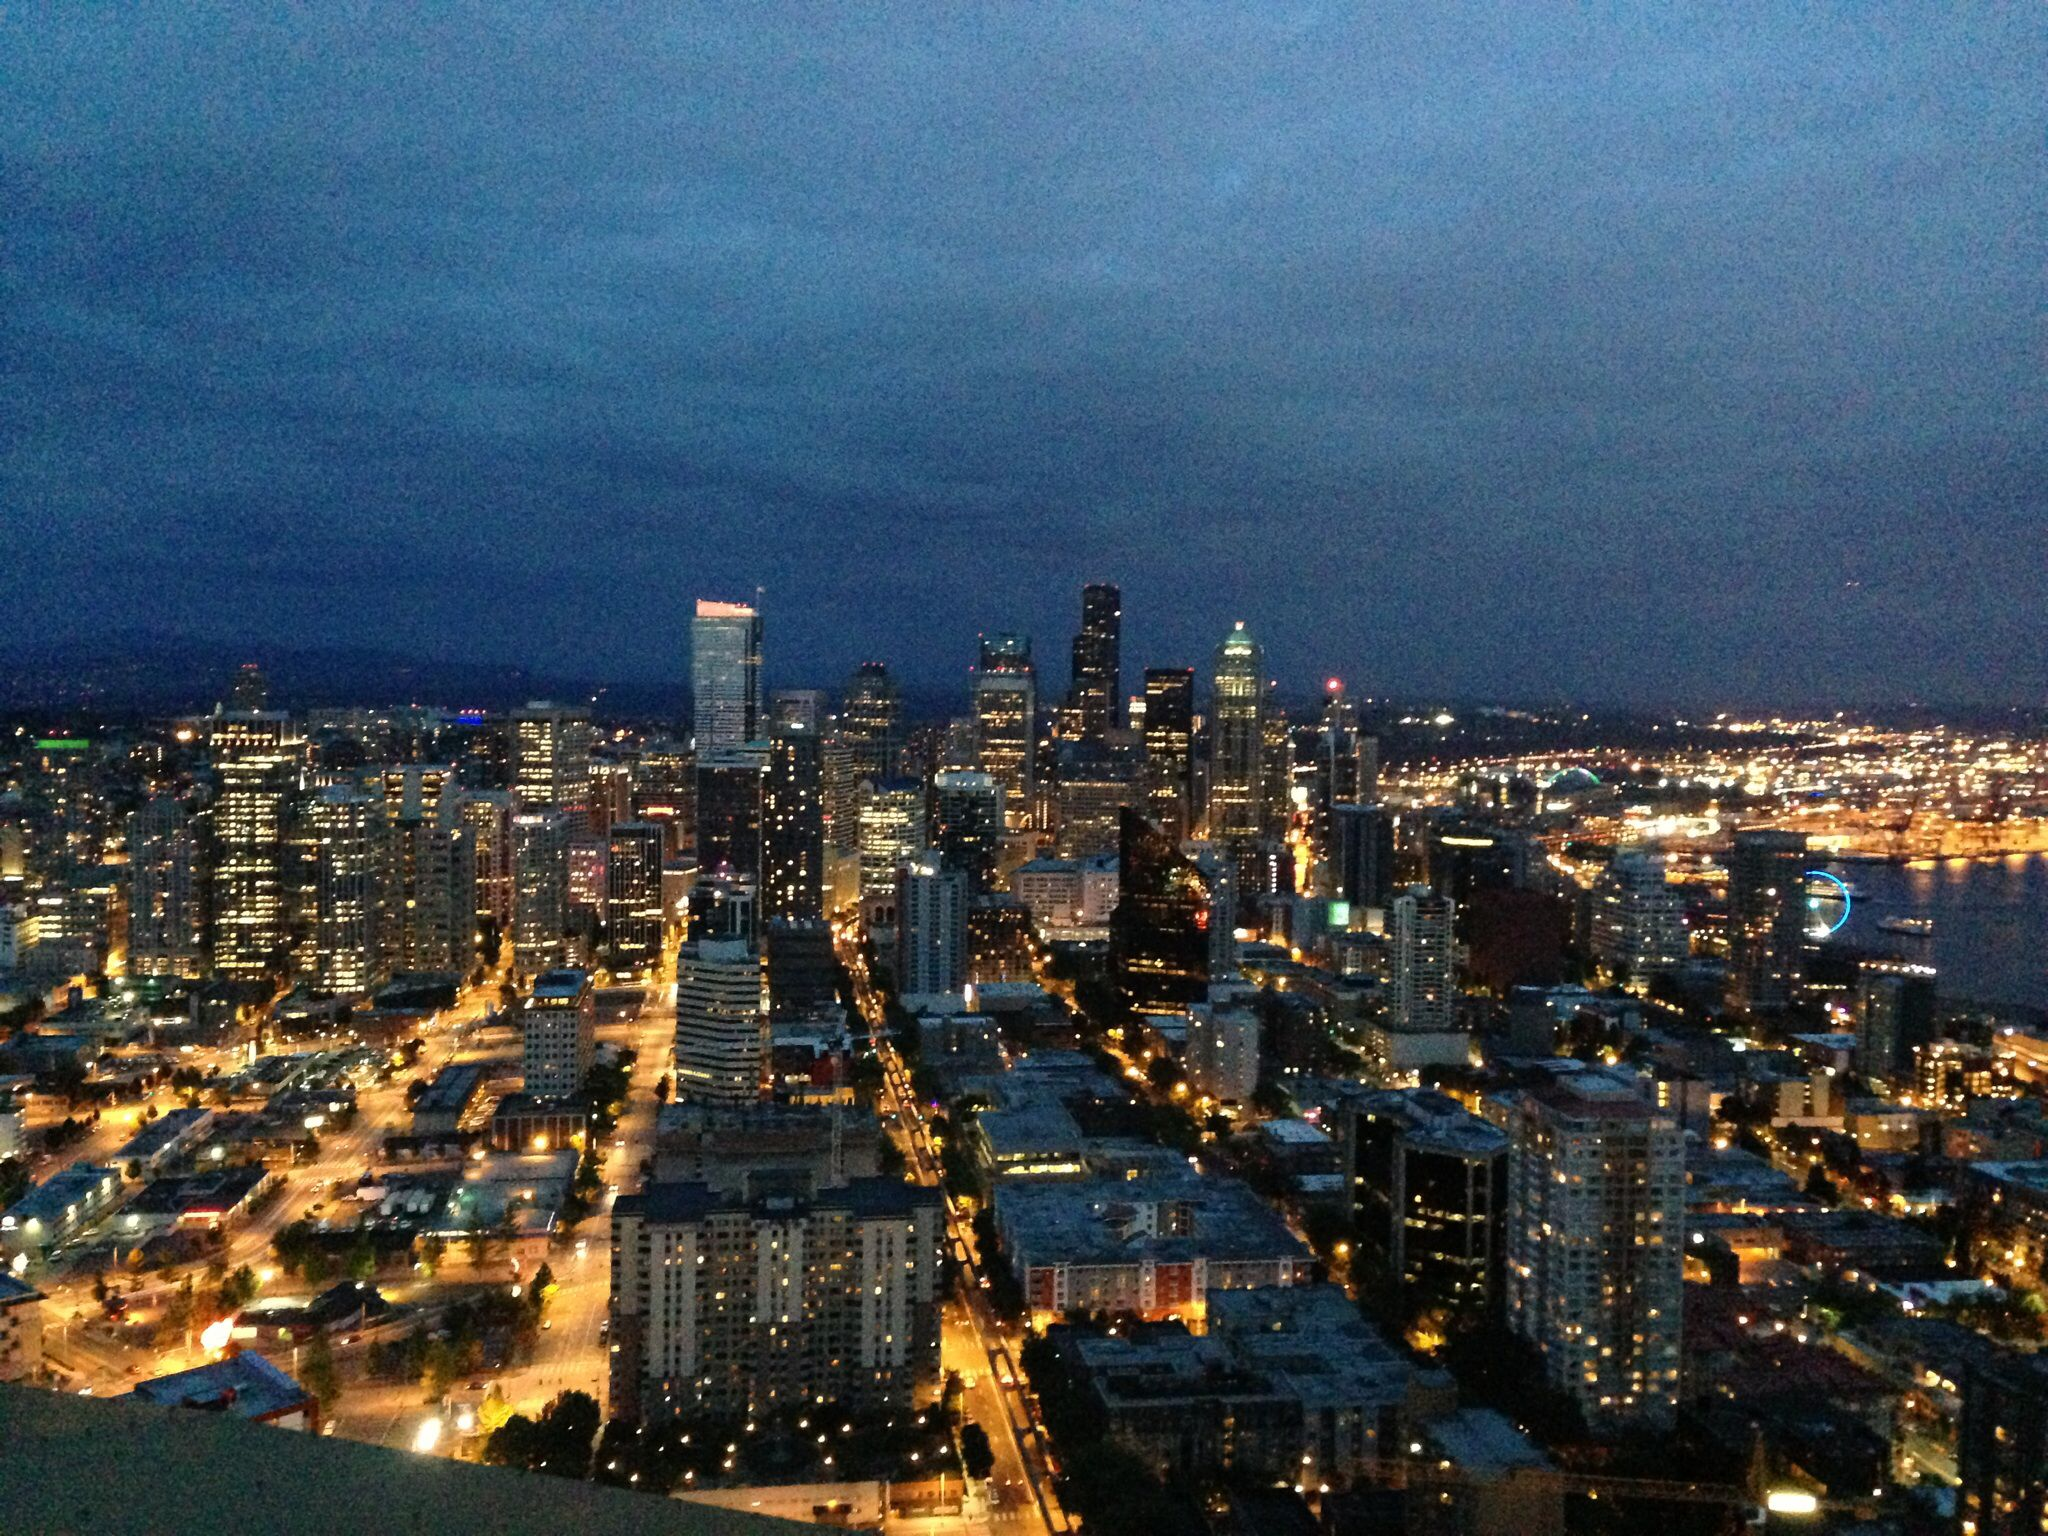 Pretty view in Seattle